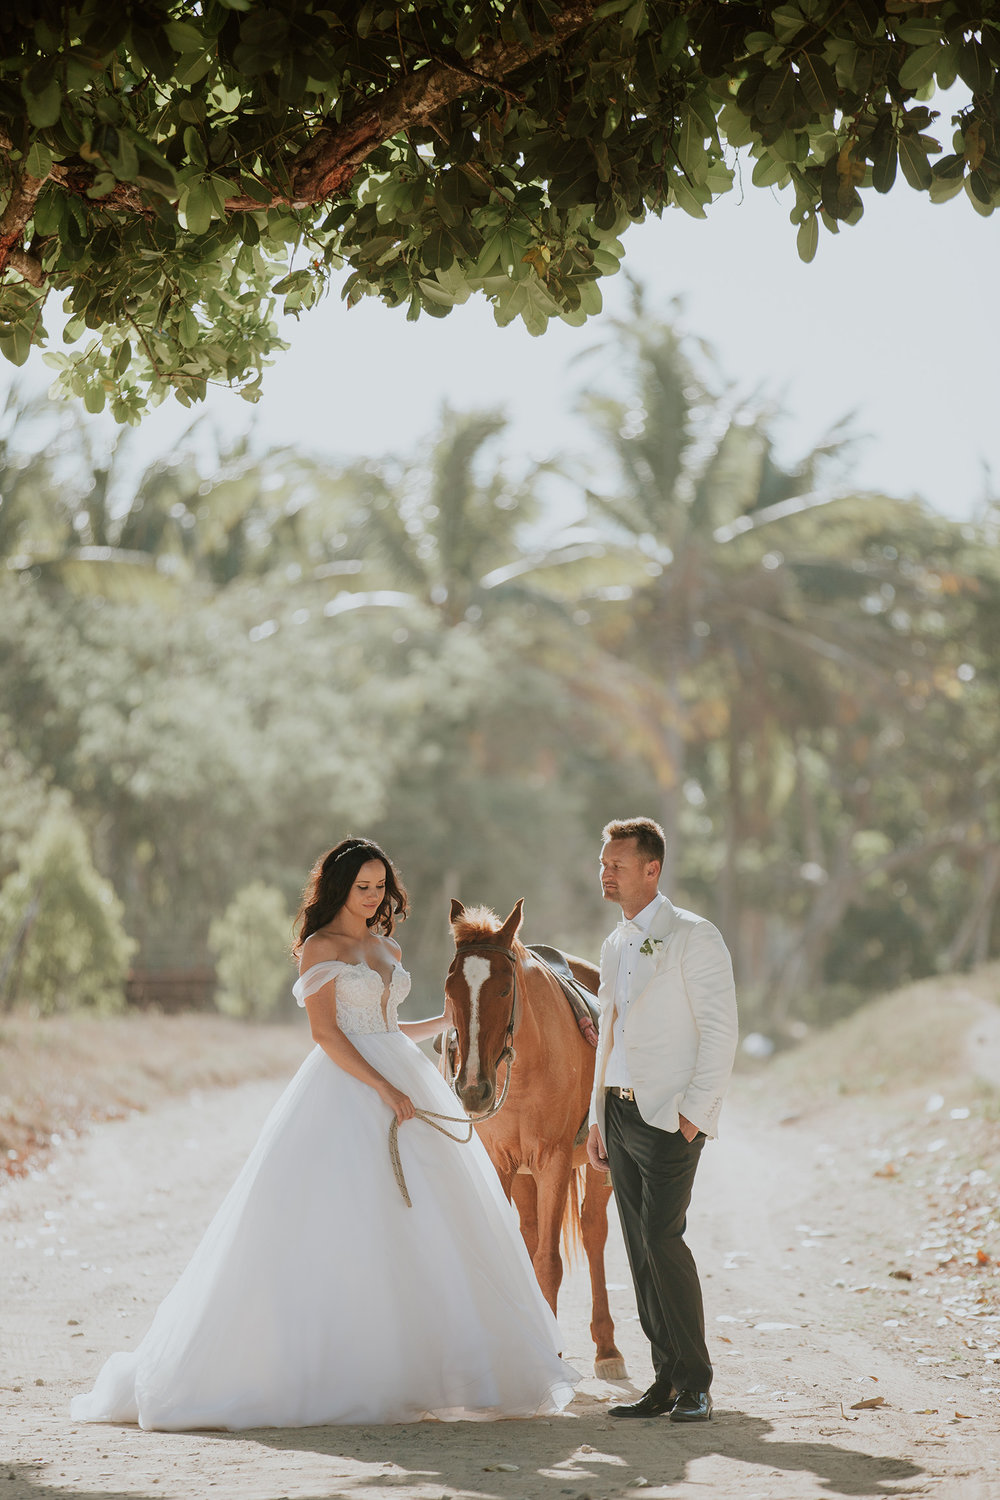 Estera and Matt - kama catch me  Photography - fiji photography-43.jpg